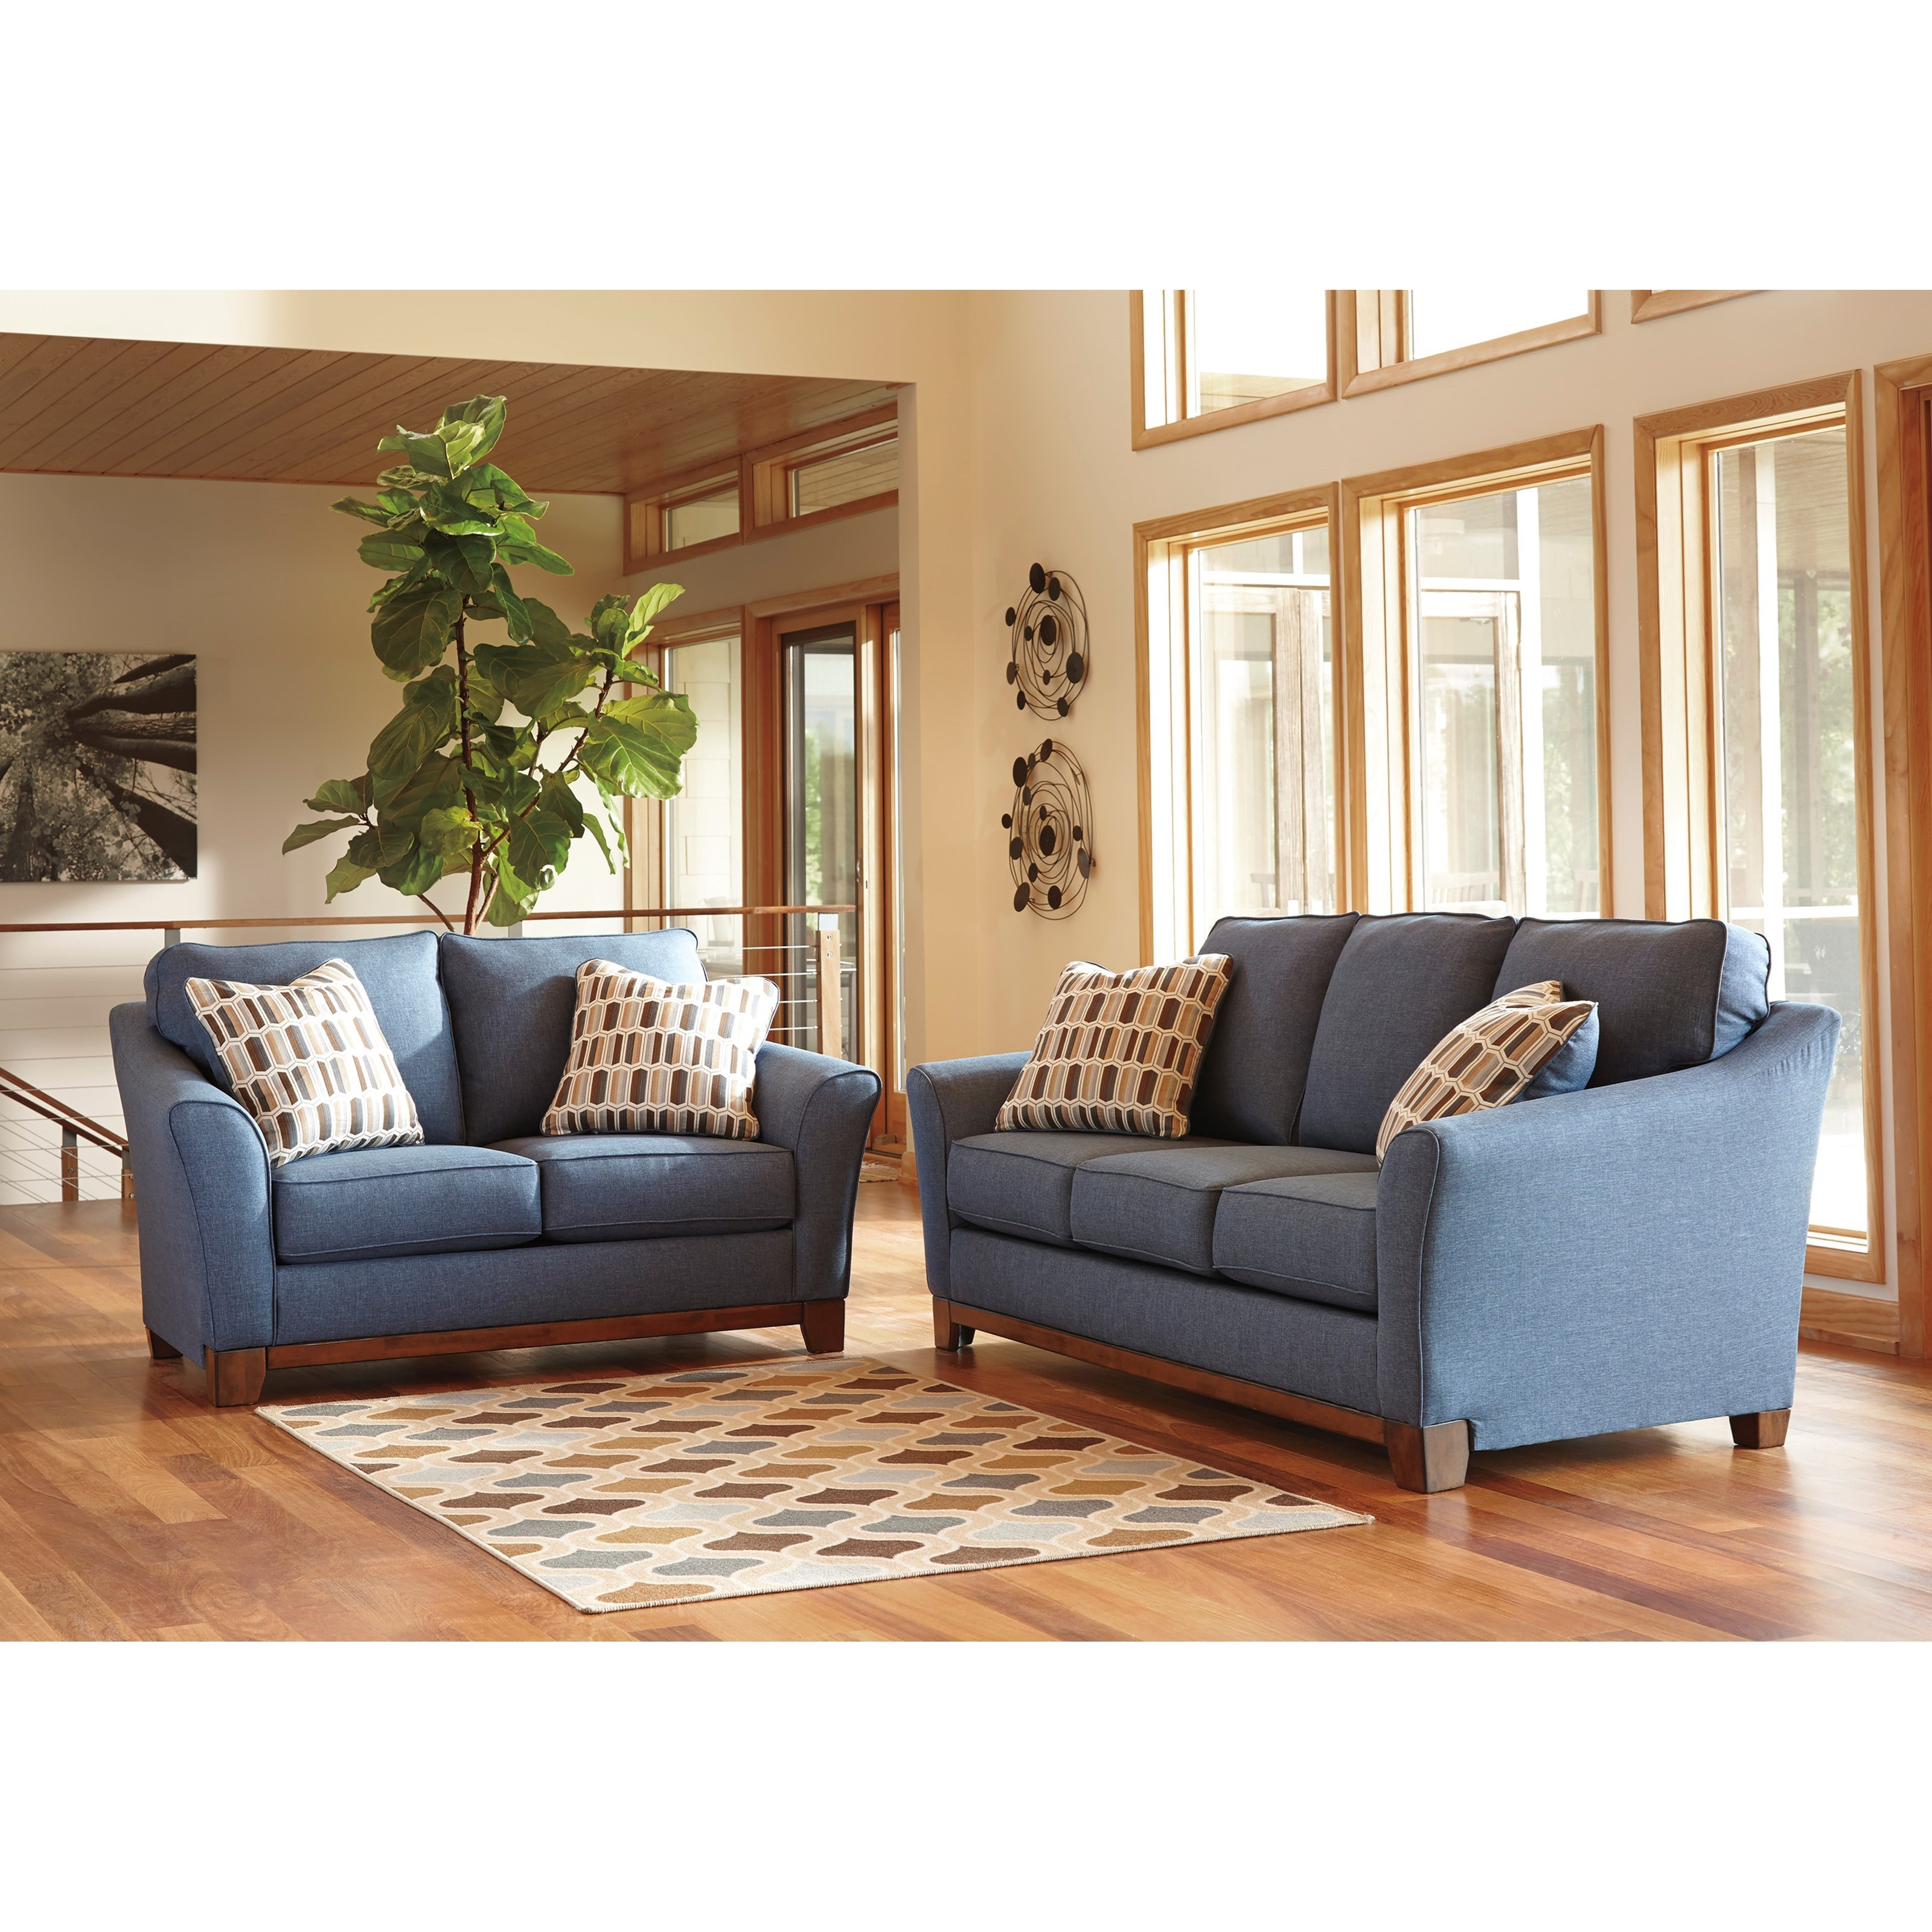 Delsolfurniture.com